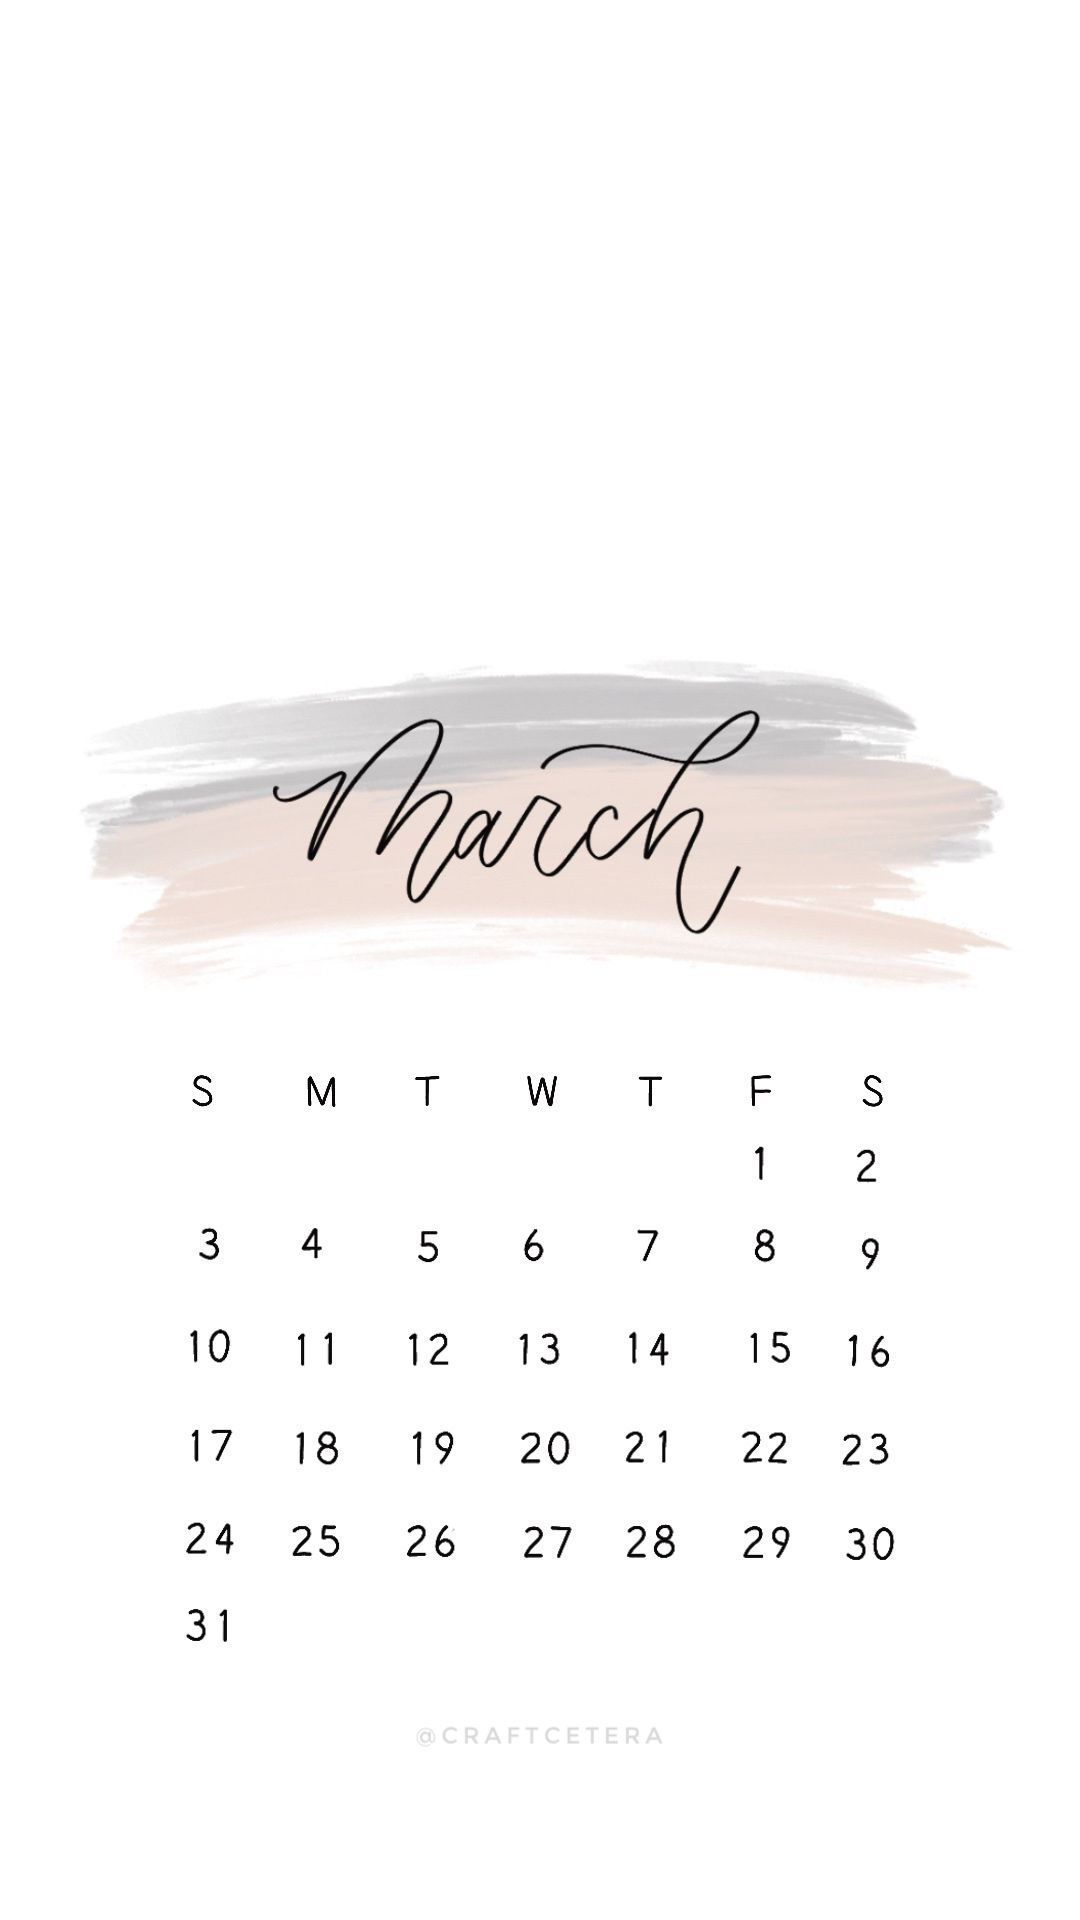 Free Calendar Wallpaper Design For Iphone Android Calendar2019